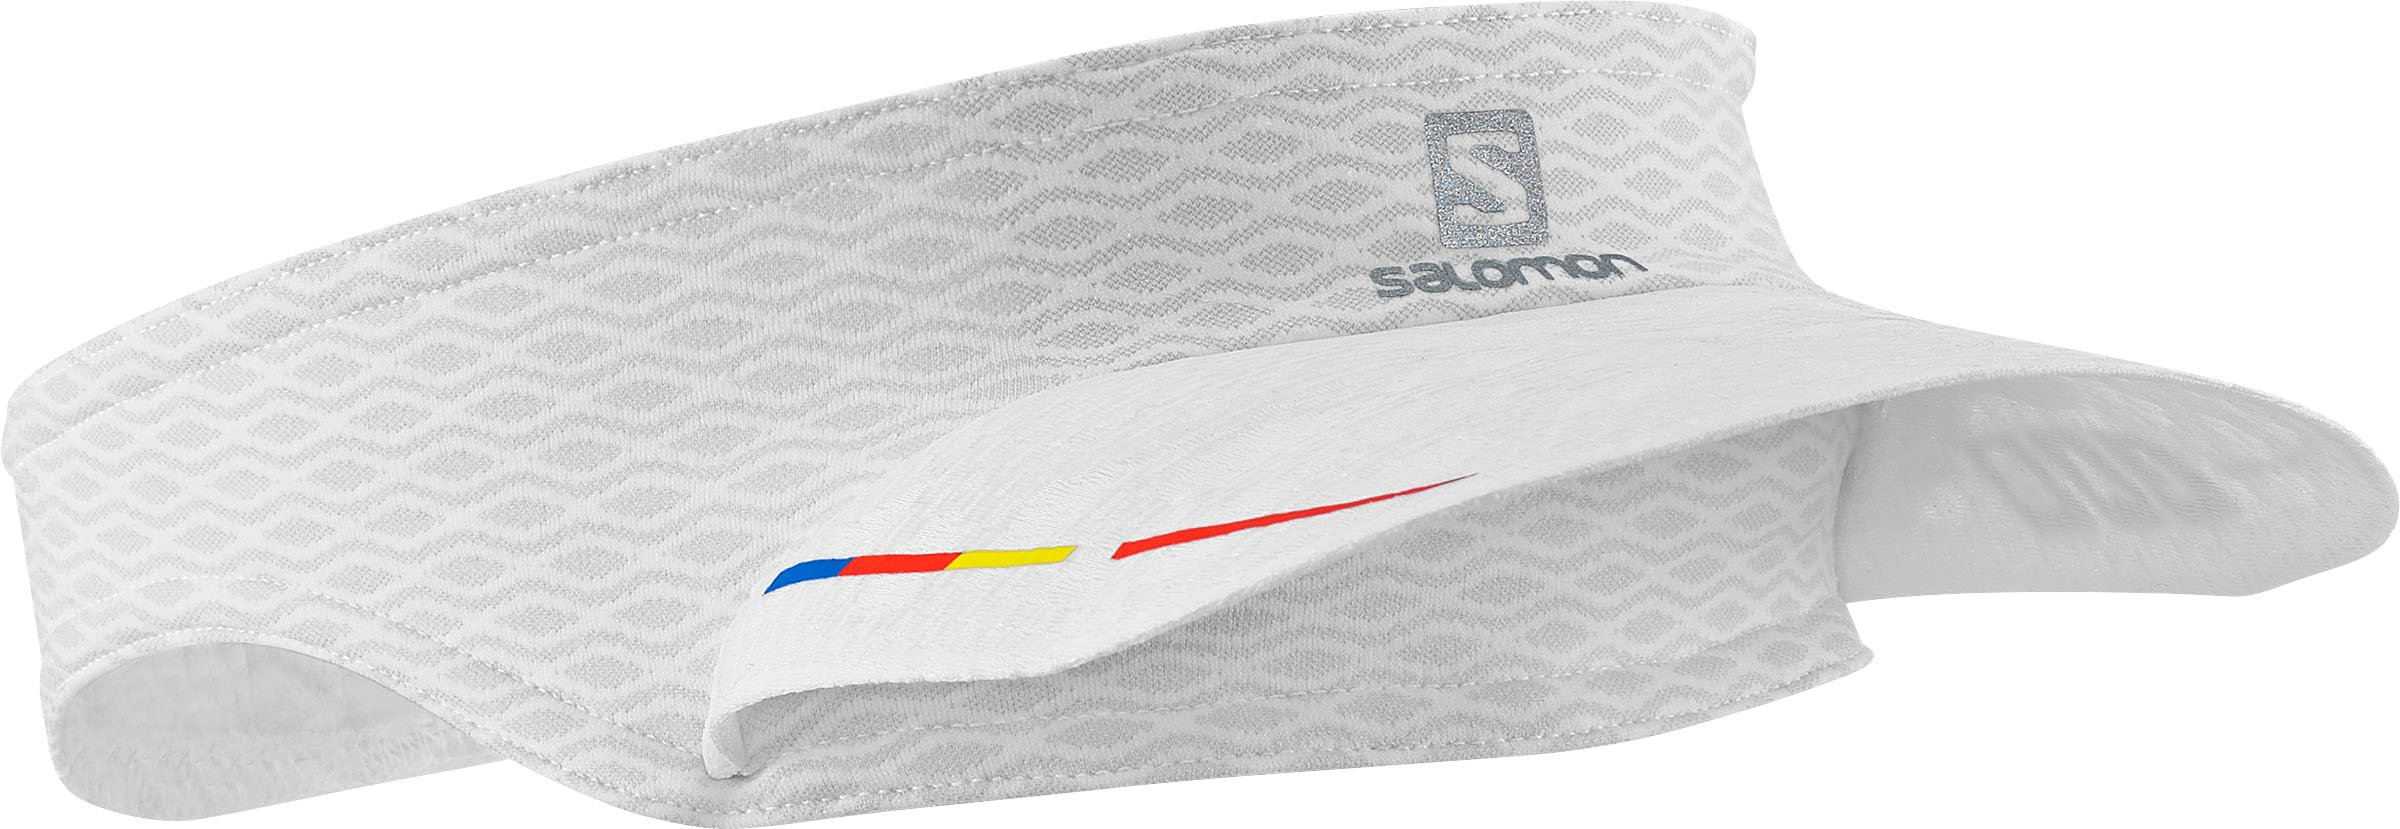 Kšilt Salomon S-LAB SENSE VISOR White